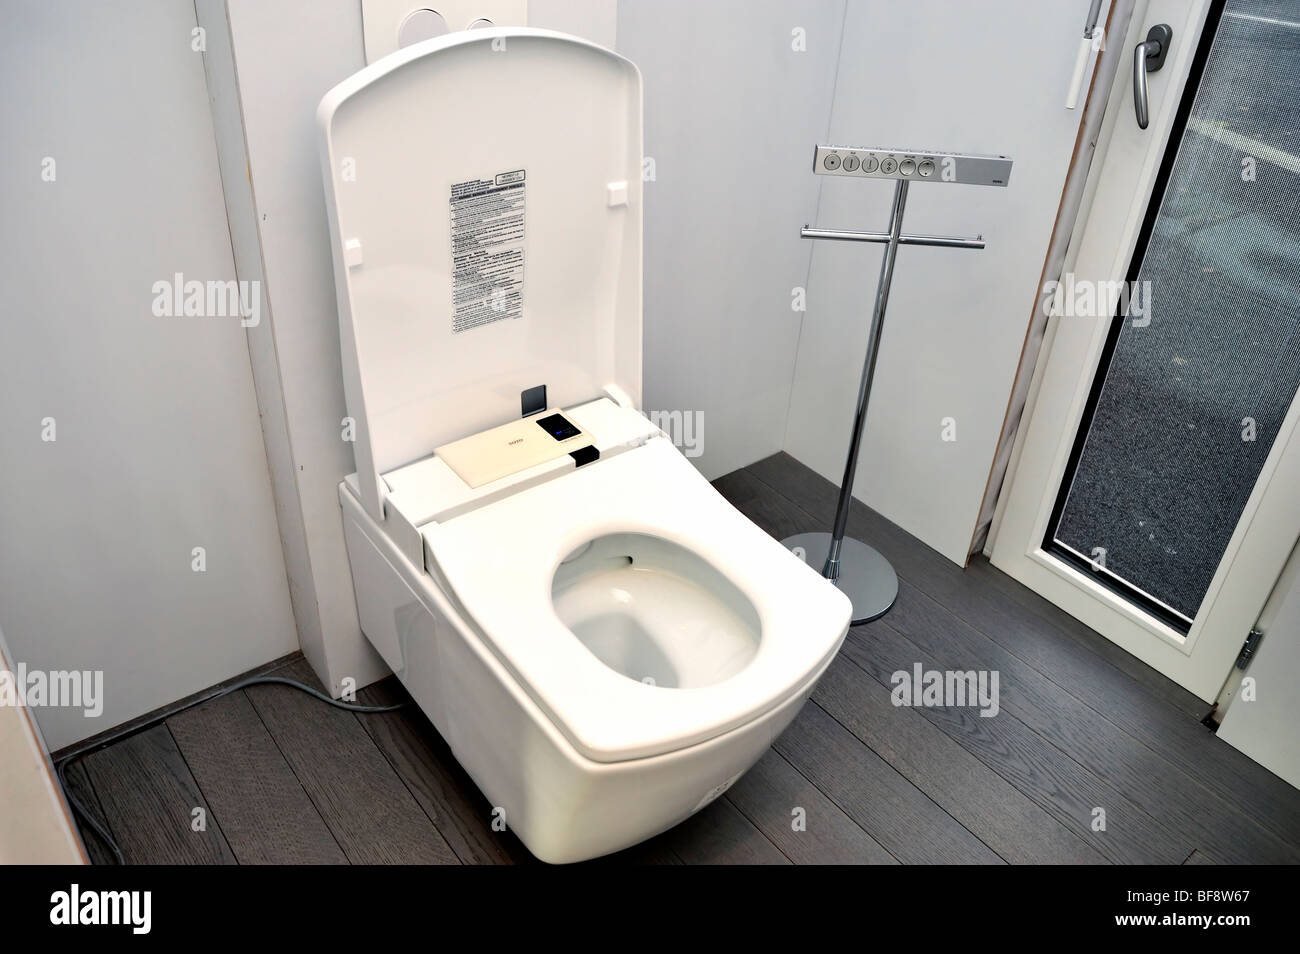 paris france construction equipment be green eco house bathroom equipment electronic toilet toto